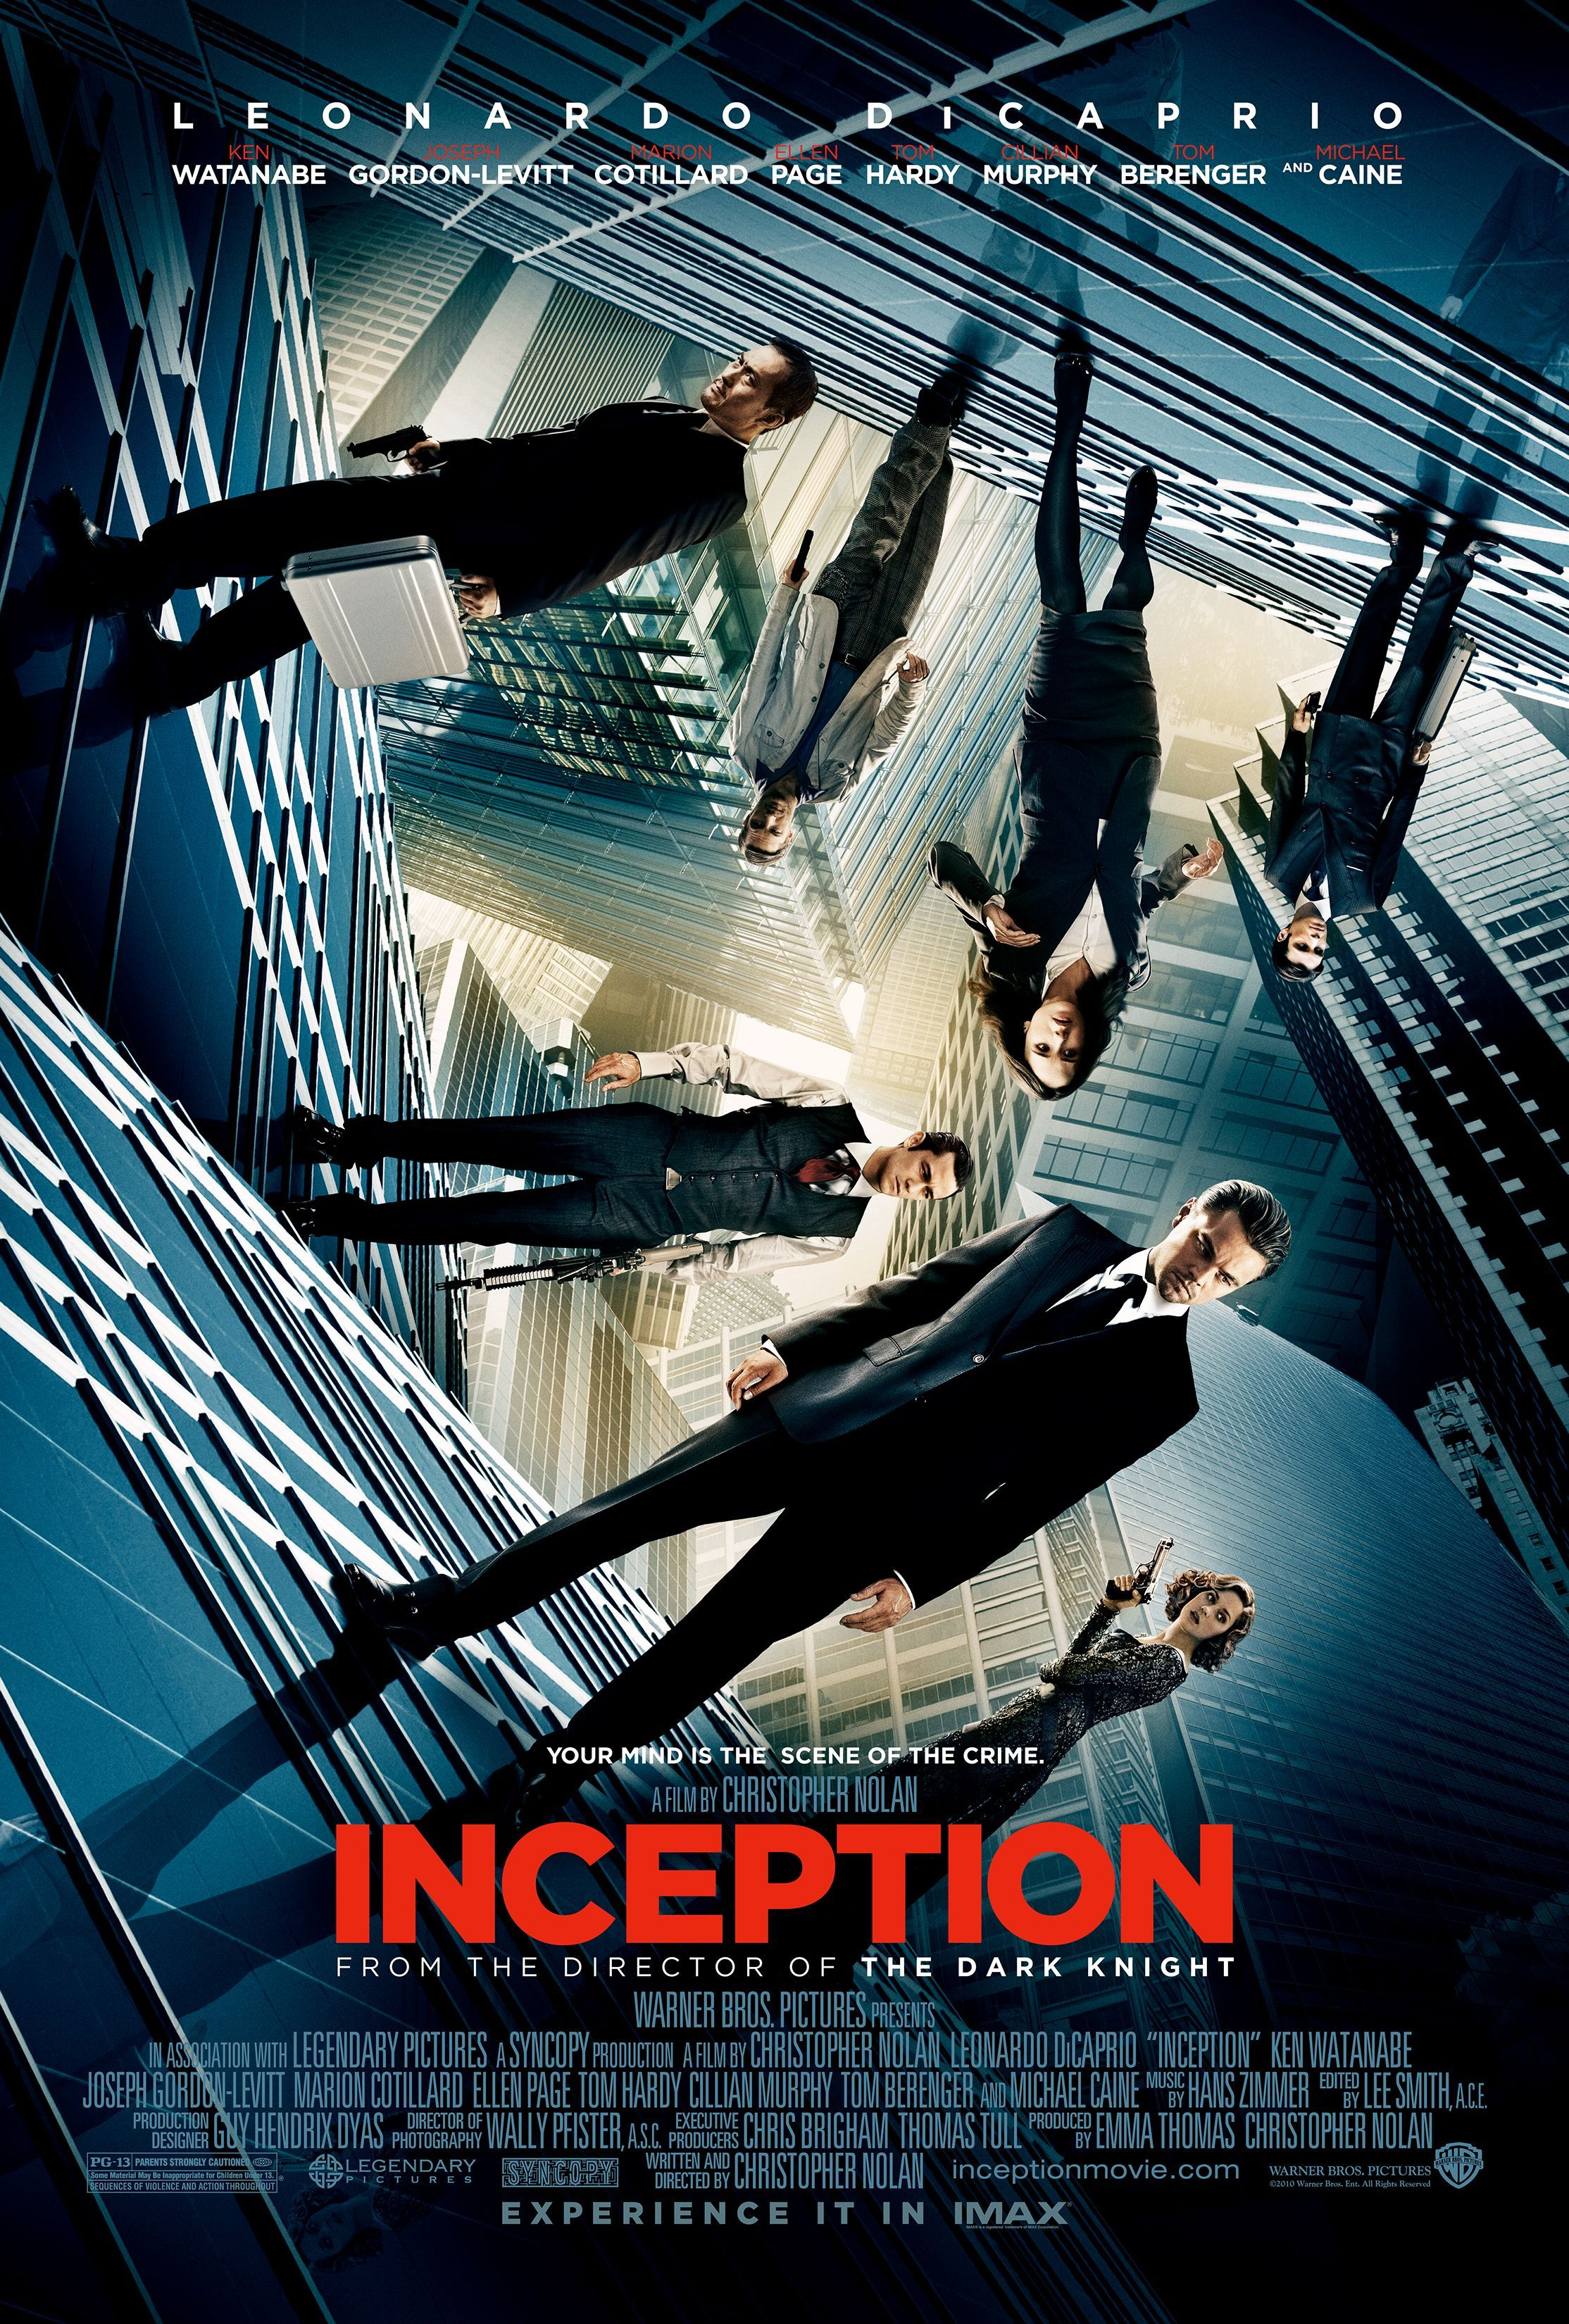 Pin By Mayra Clara Bogado On Movie Poster Inception Movie Poster